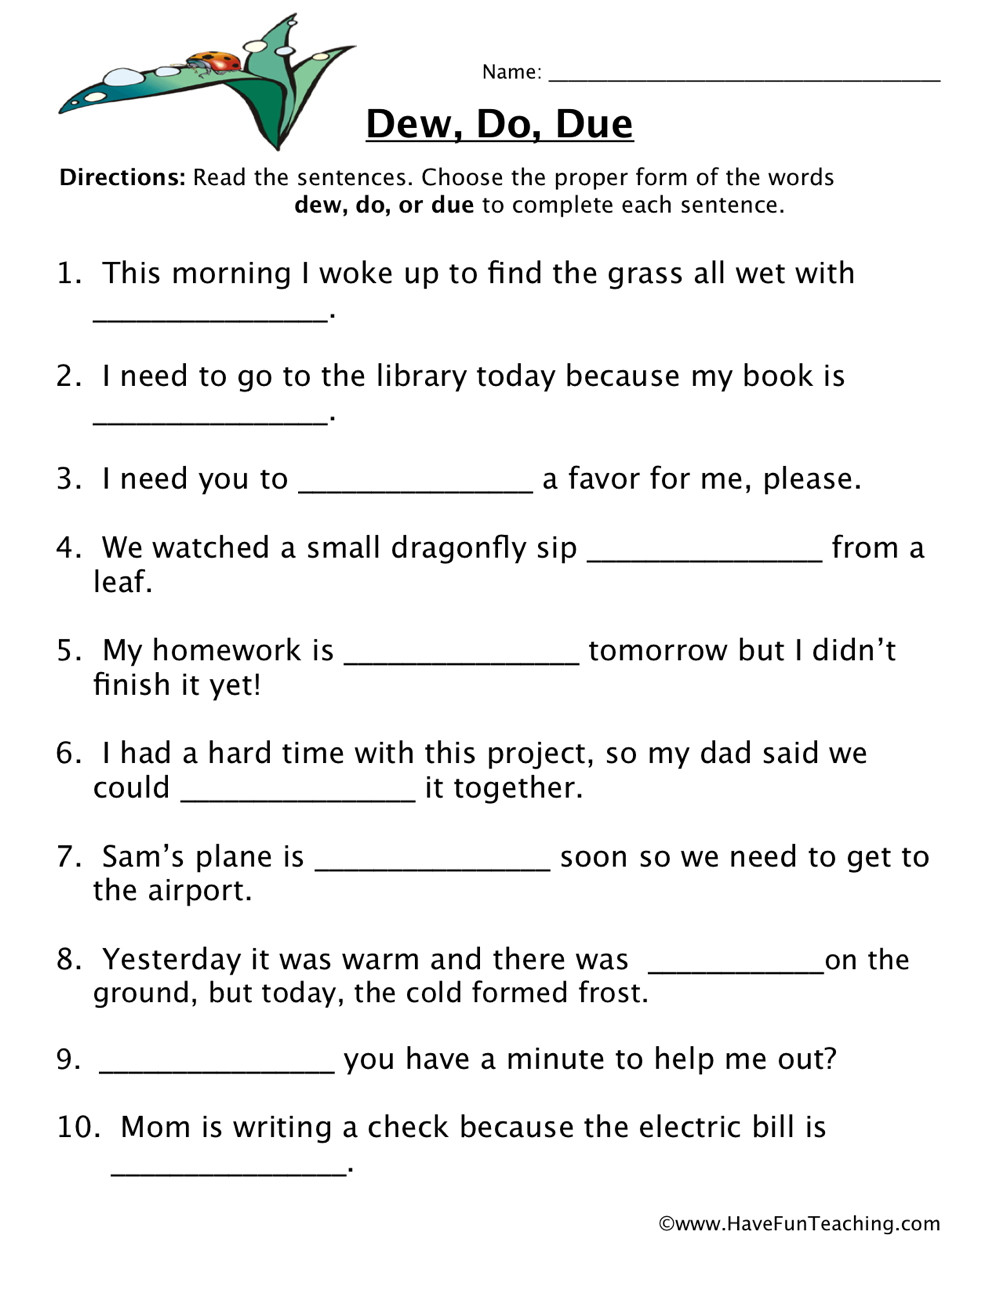 Homophones Worksheet 4th Grade Dew Do Due Homophones Worksheet